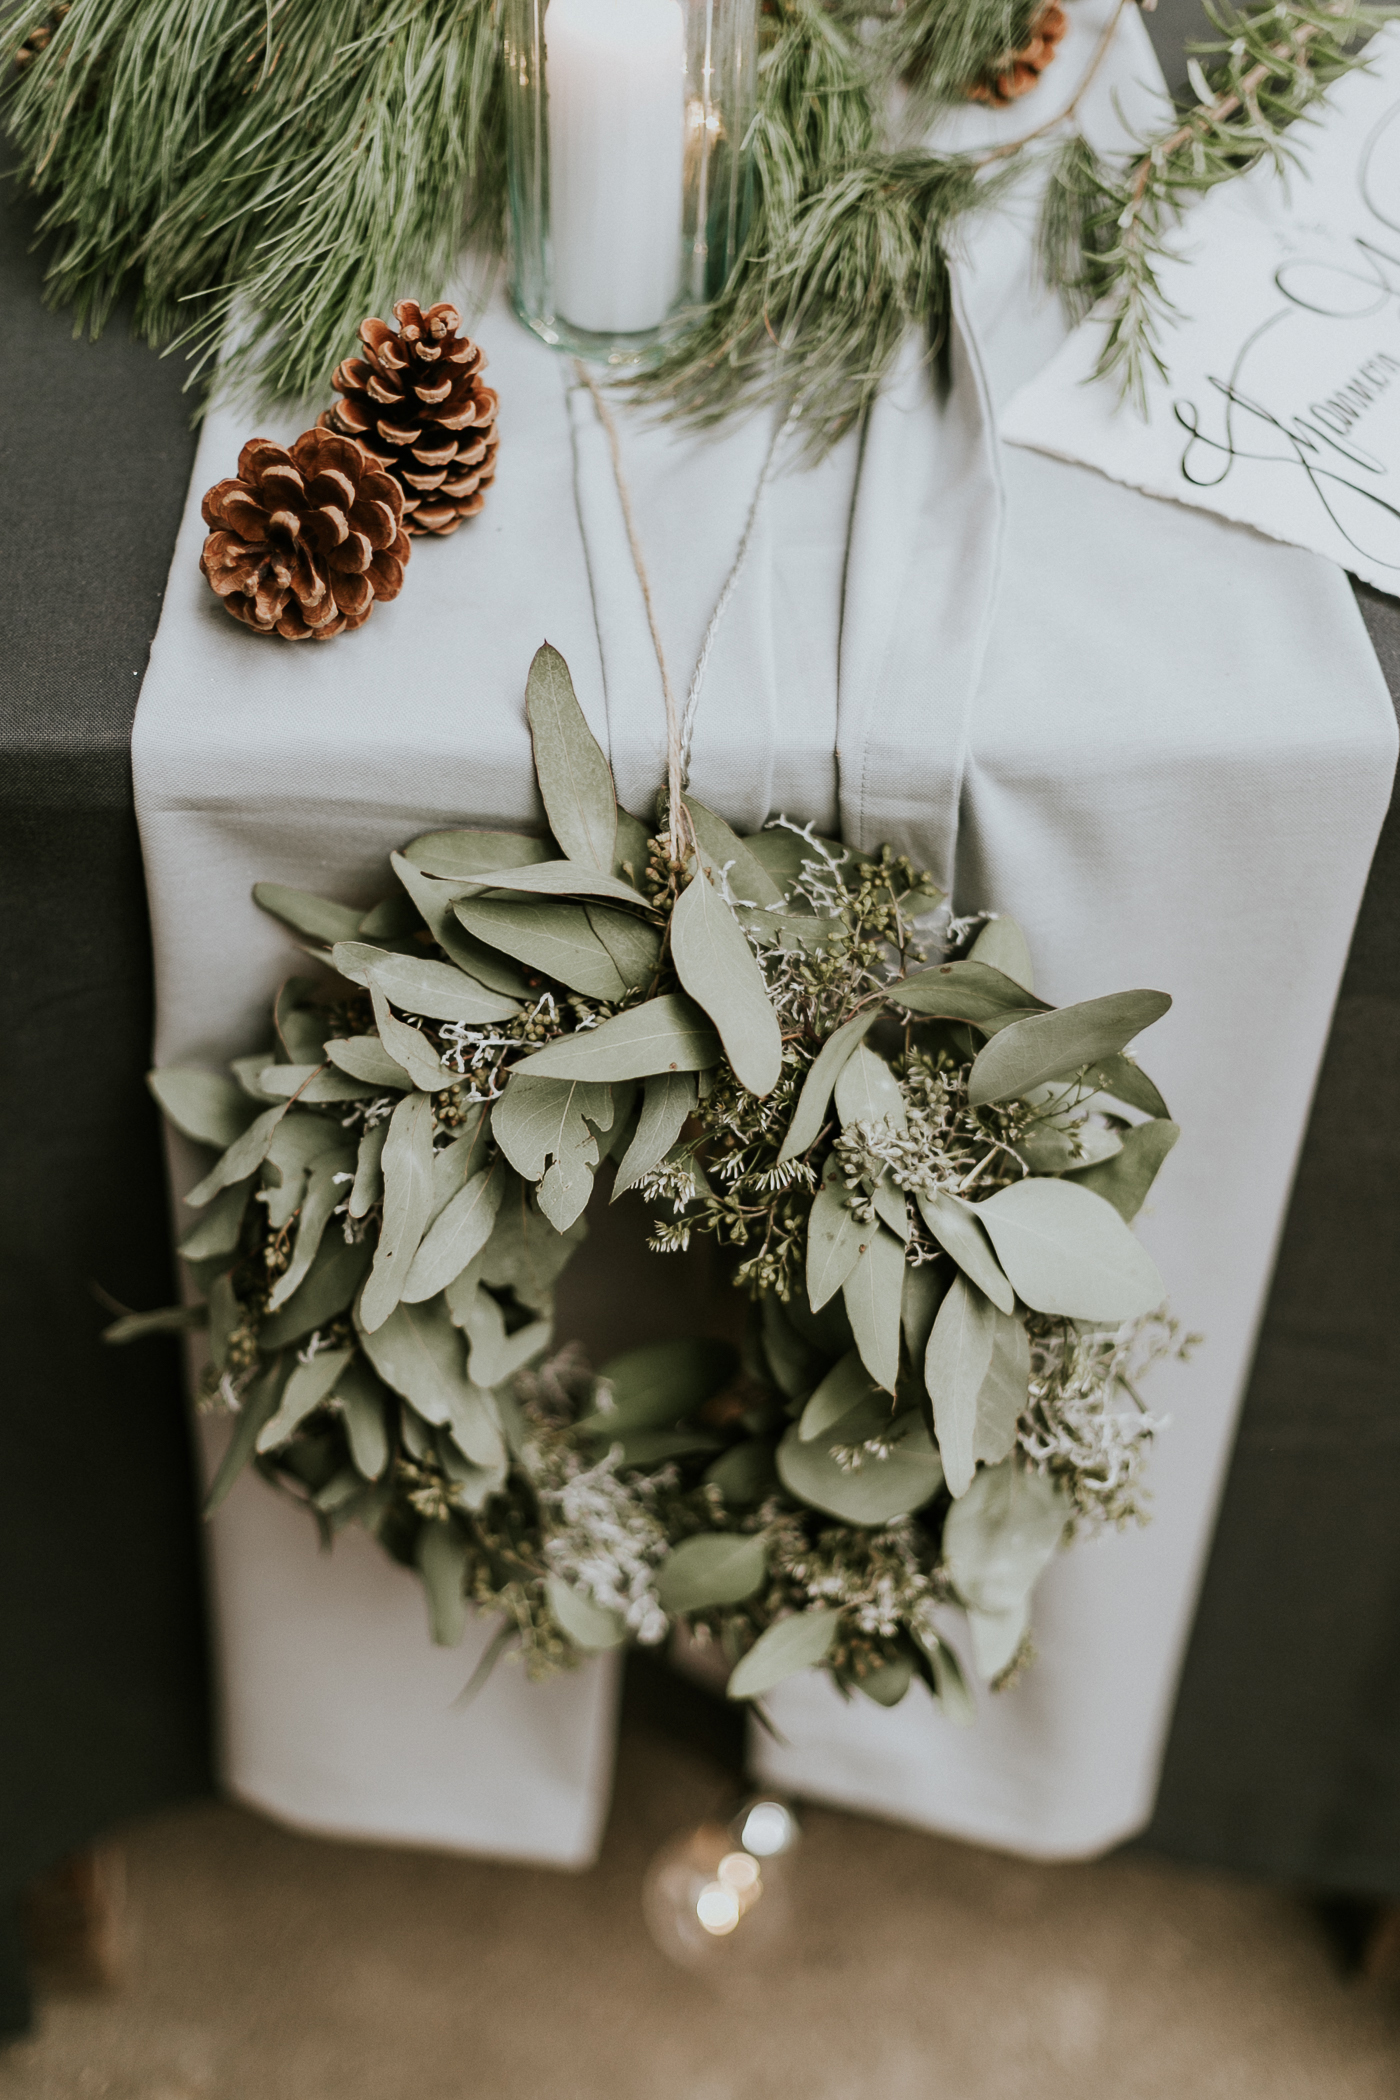 wedding wreath hanging from table with pine cones